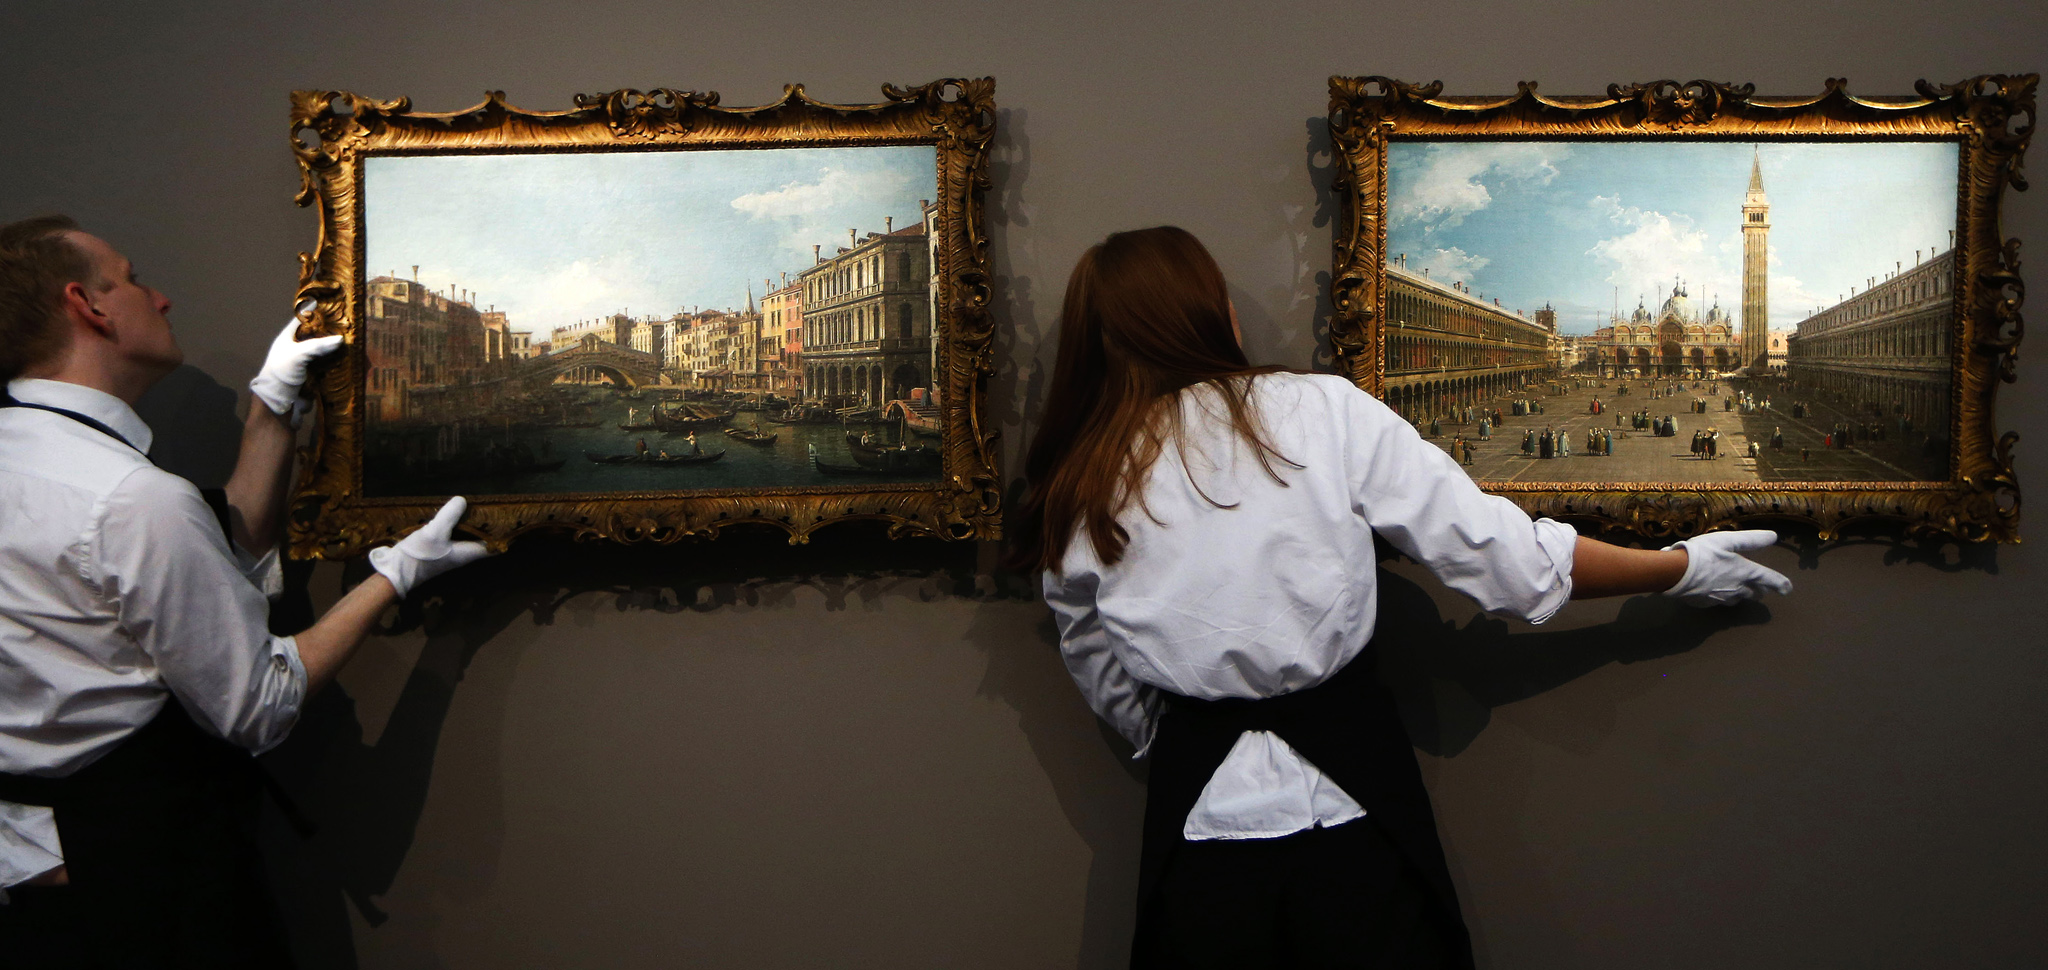 Sotheby's employees hang up the paintings 'A View of the Grand Canal and Rialto Bridge', left, and 'A View of the Piazza San Marco looking East towards the Basilica' by Canaletto on display at the auction house in London. The paintings are to be auctioned as a pair in 'Old Master and British Paintings' sale on Dec. 4 with an estimated price of 8 to 12 million pounds (US$12.44 to 18.66 million or 9.3 to 13.94 million euro).